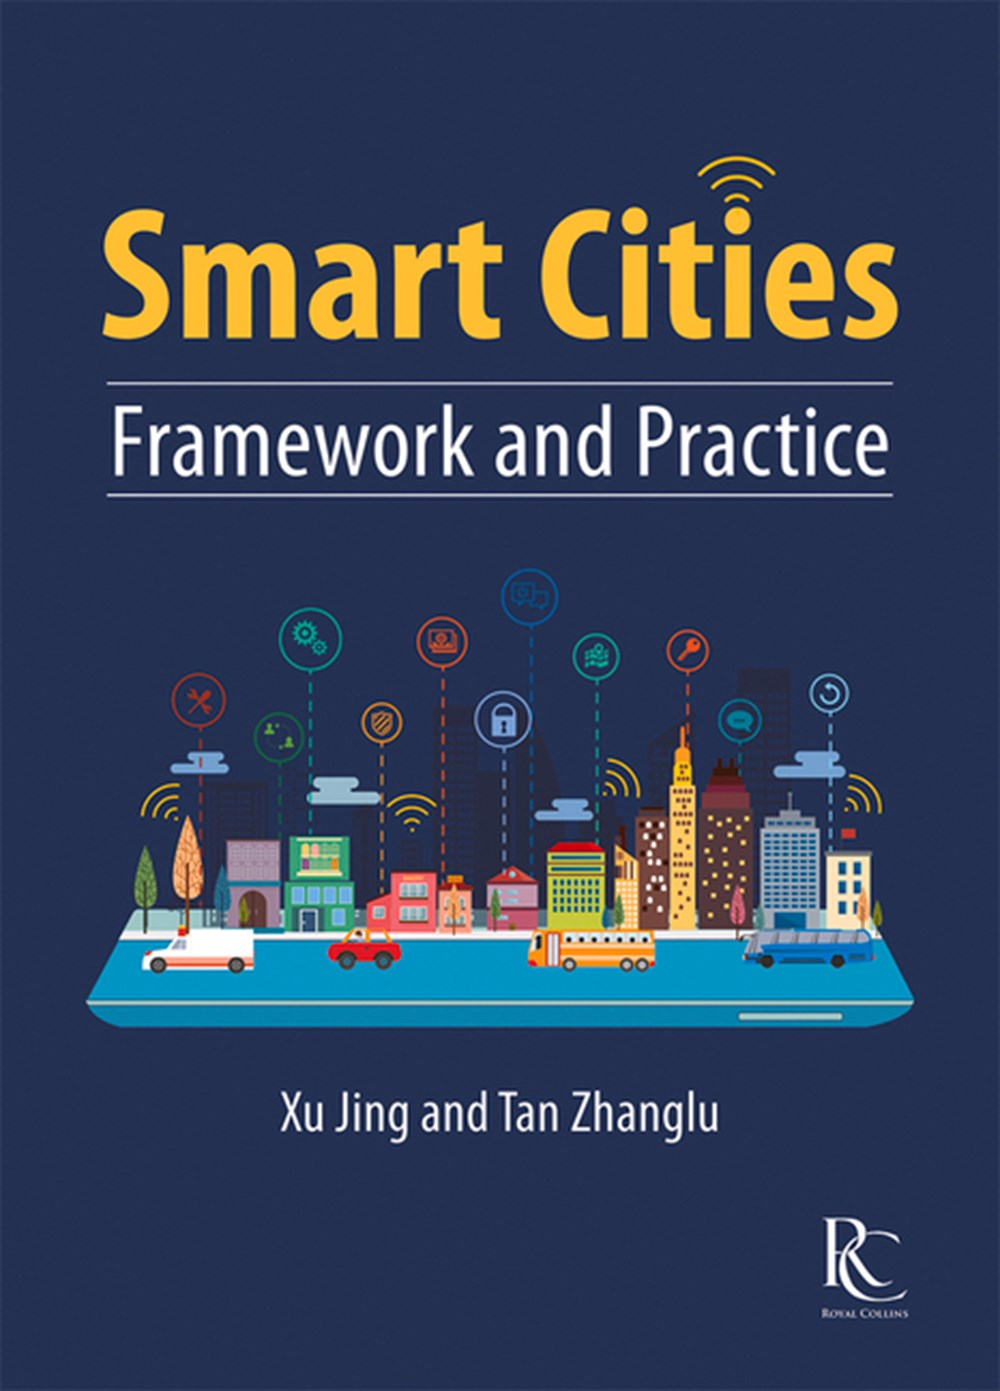 Smart Cities Framework and Practice